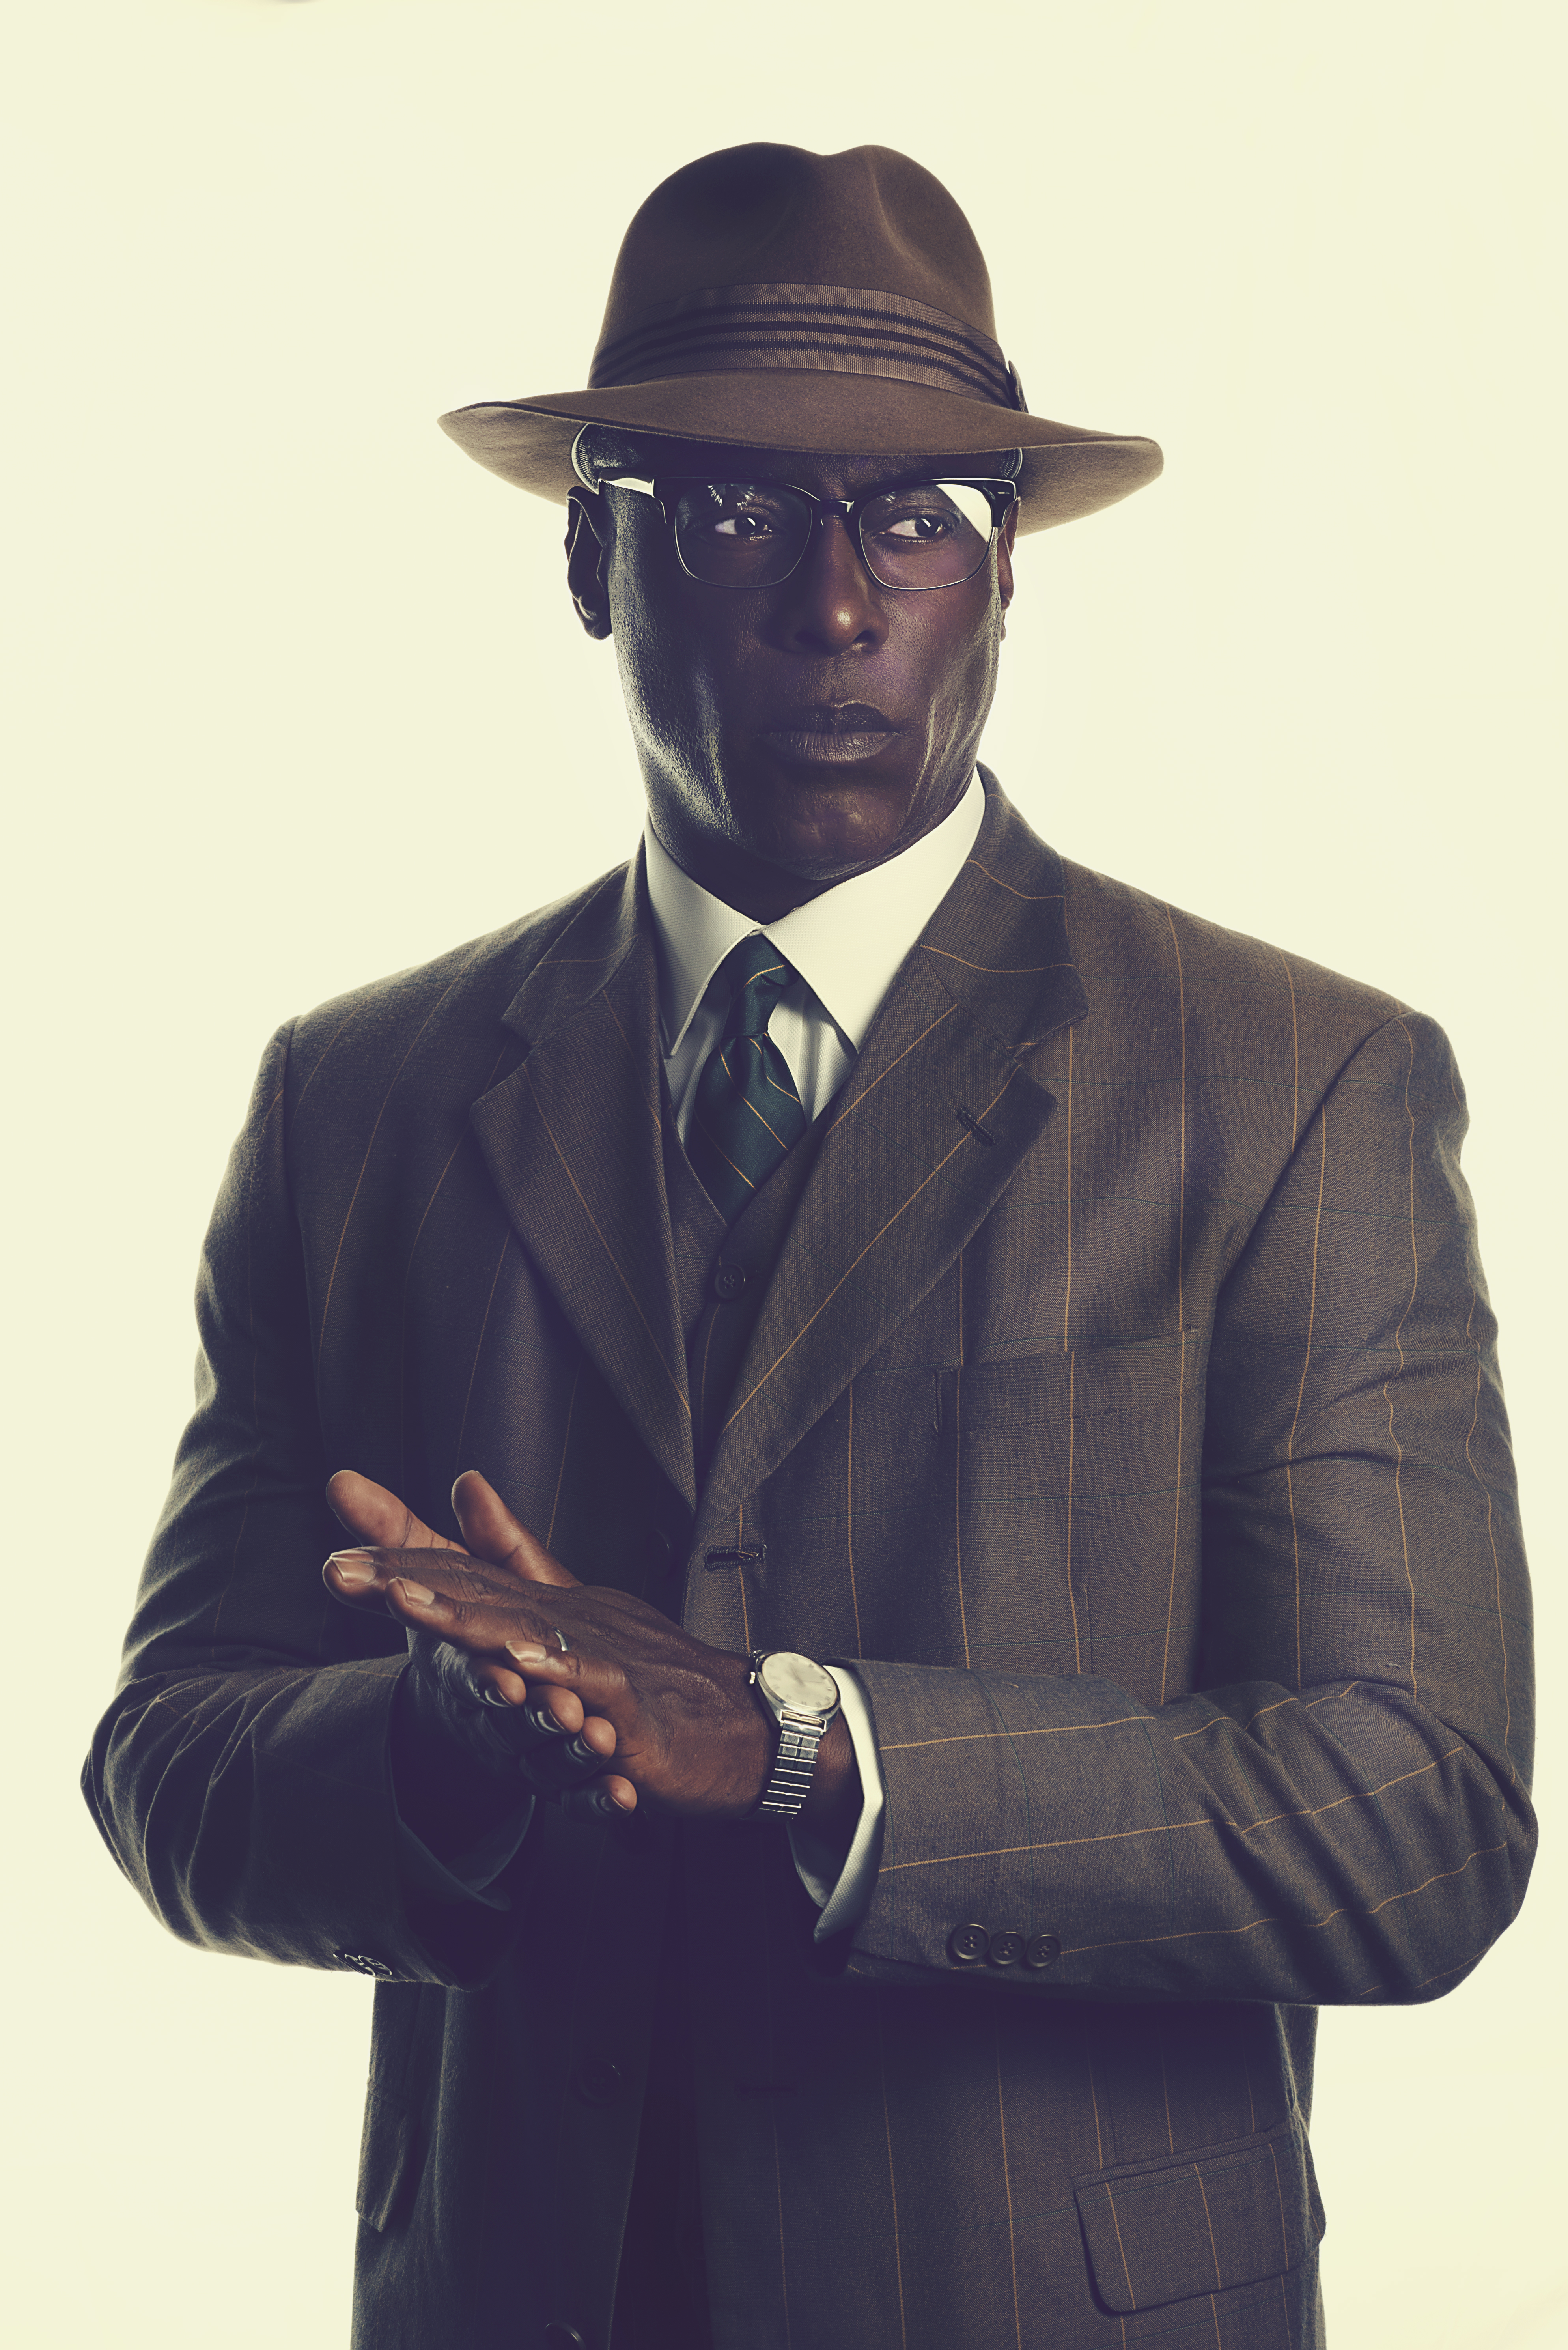 Isaiah Washington Reveals The True Figures Behind The Civil Rights Movement